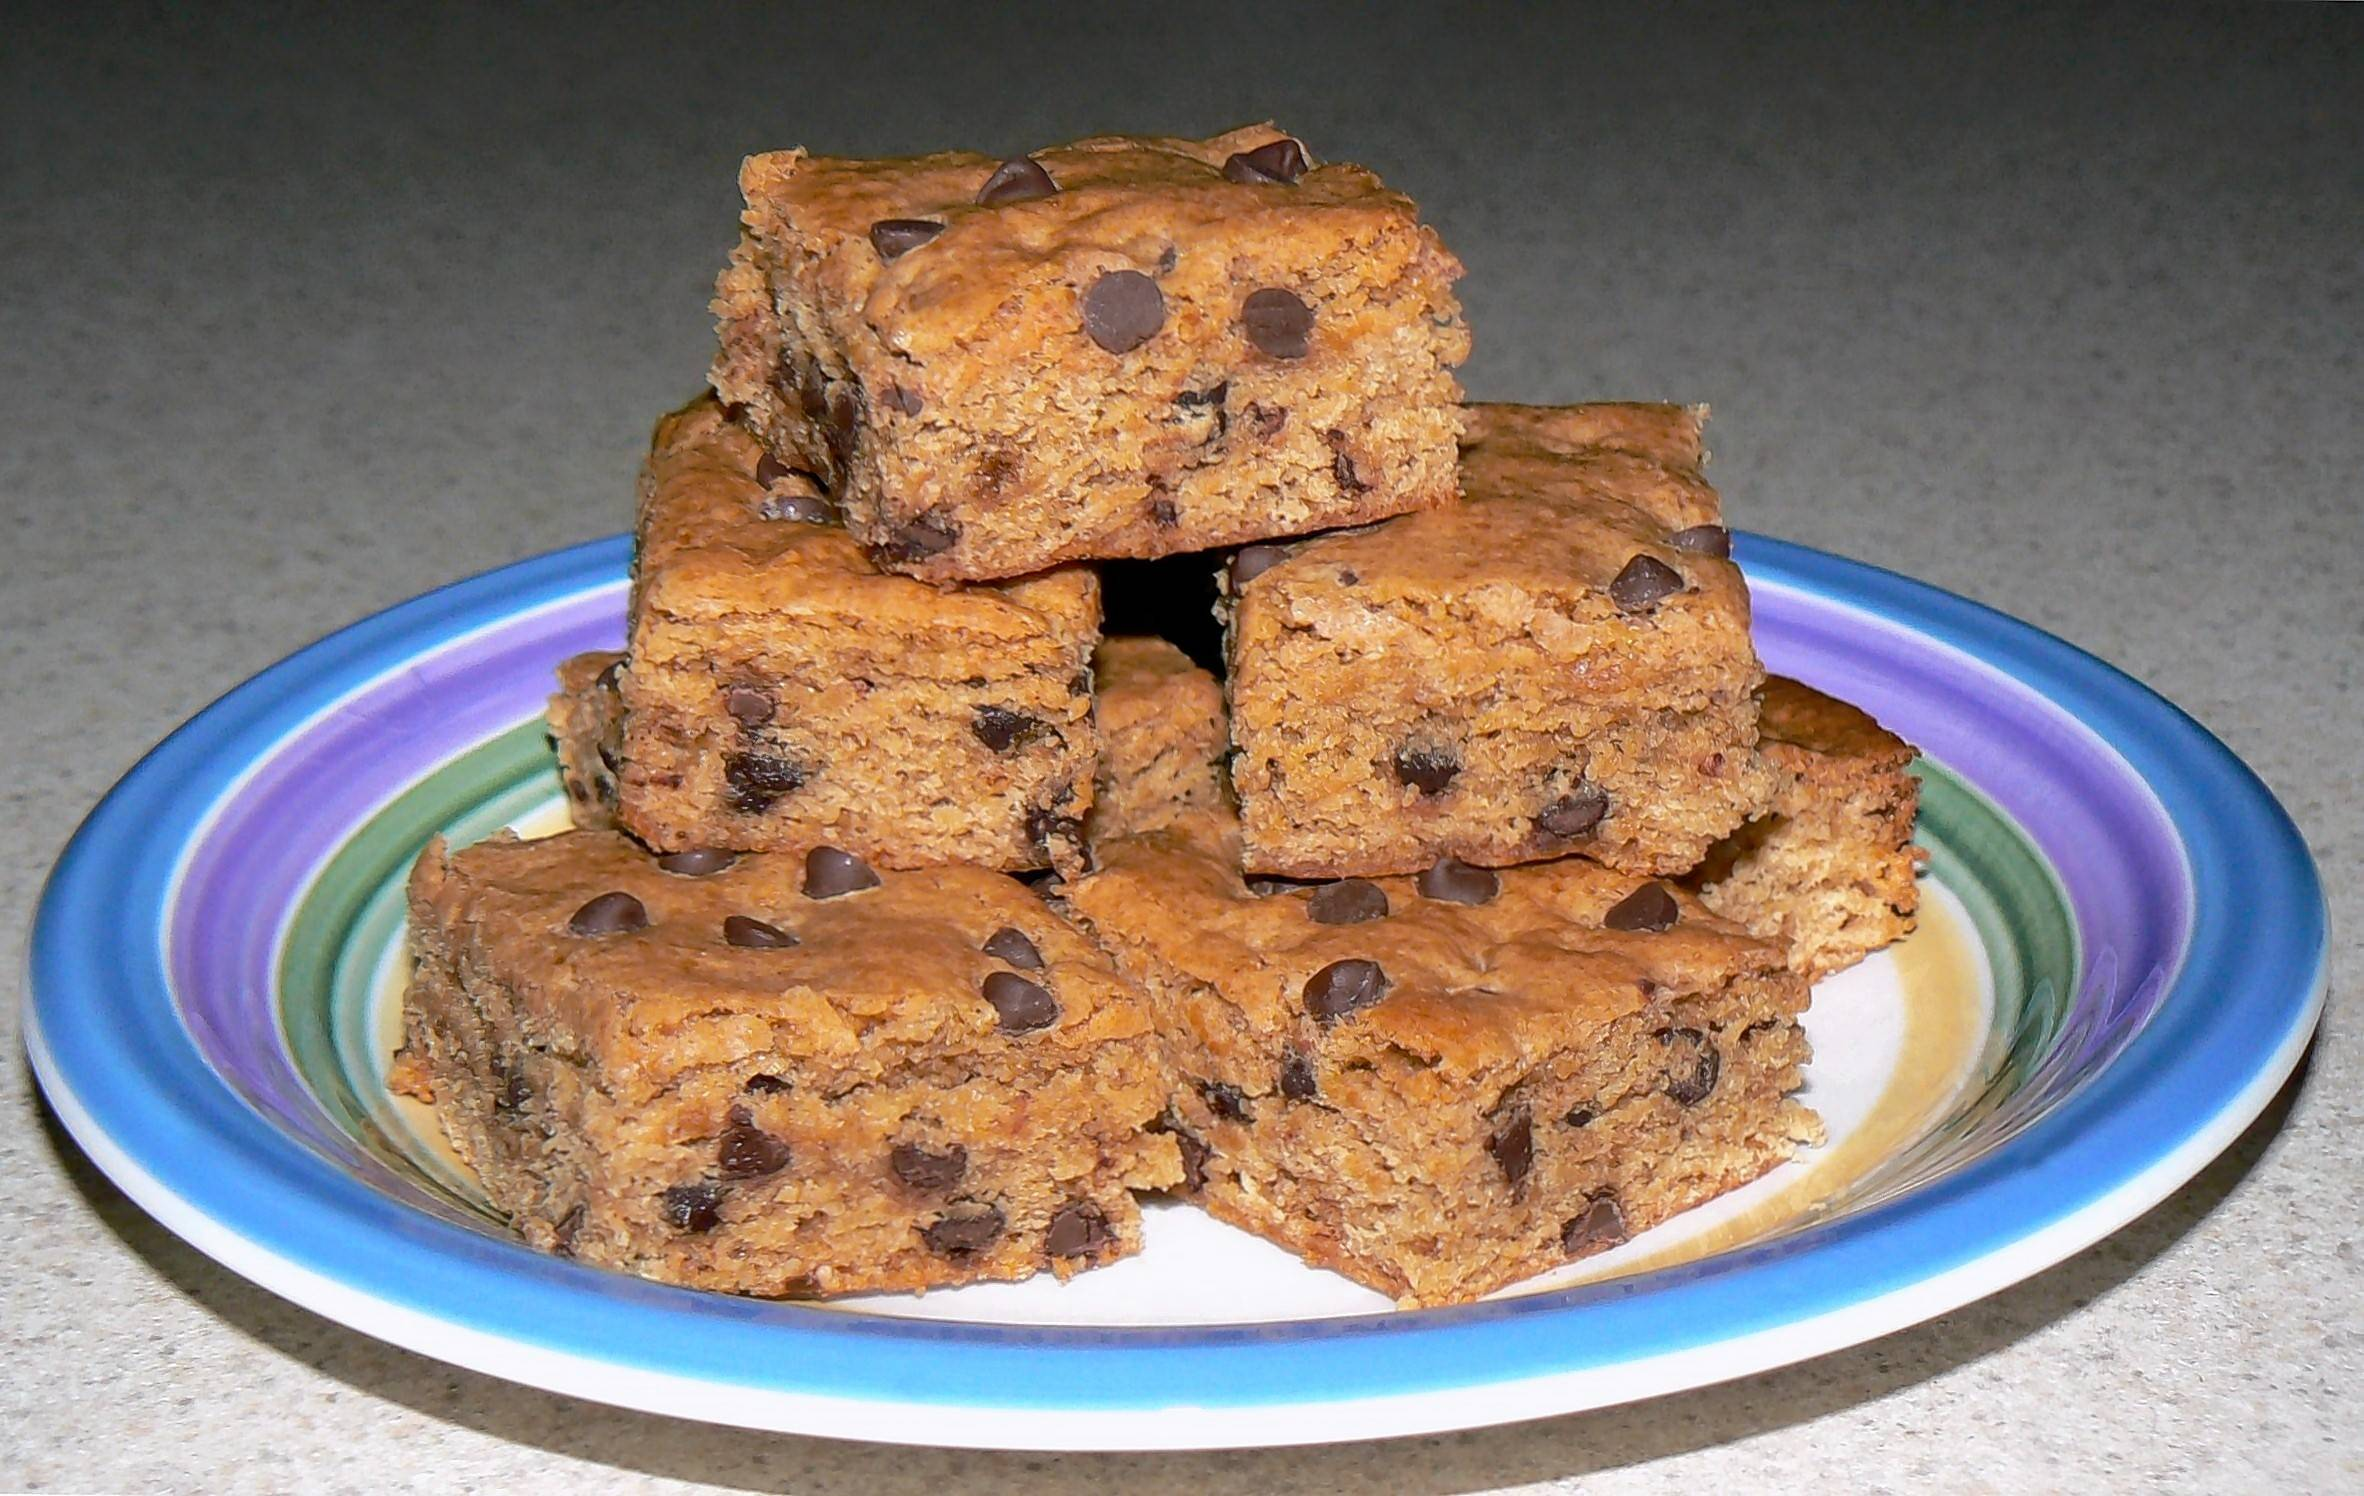 Don Mauer's anniversary gift to you: easy-to-make, fat, sugar and calorie reduced blondies made with real ingredients.